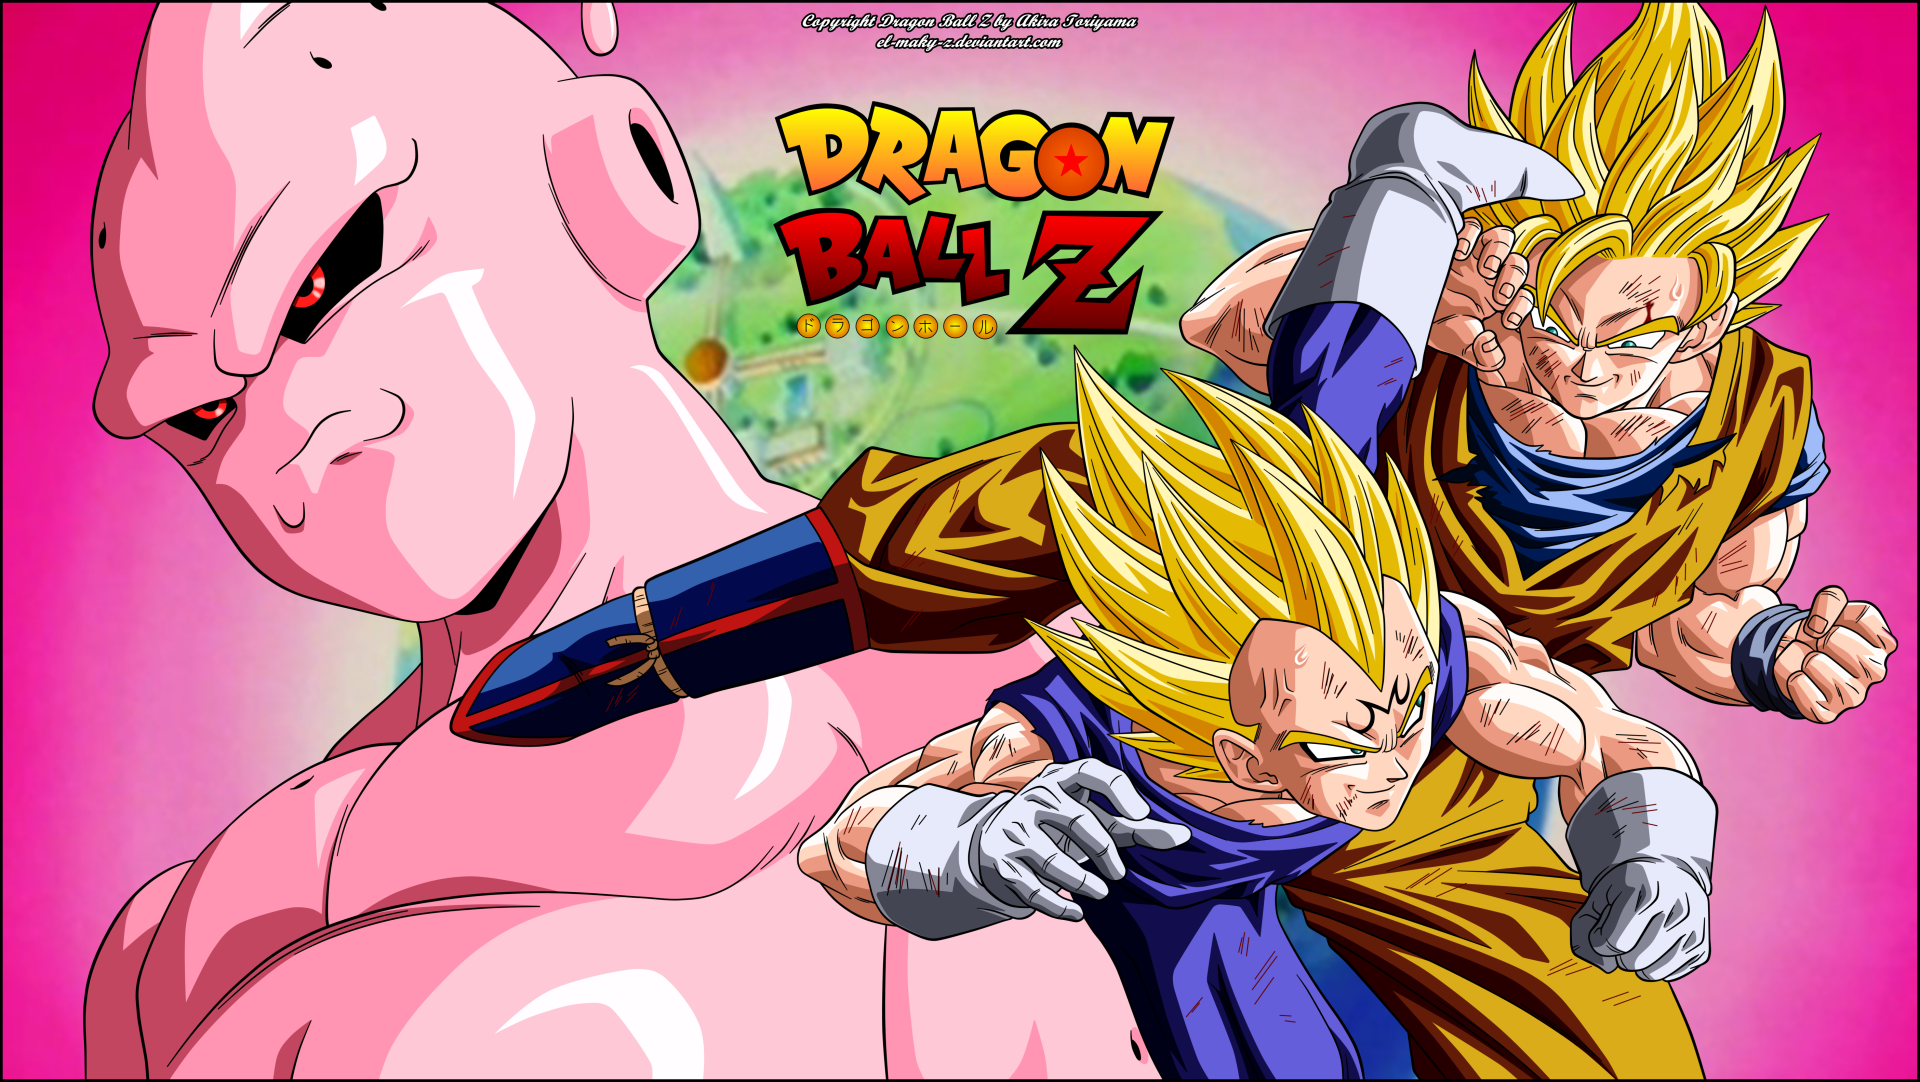 DRAGON BALL Z: Saga de Babidi & Majin Bu (1994) HD 1080P LATINO/INGLES/JAPONES